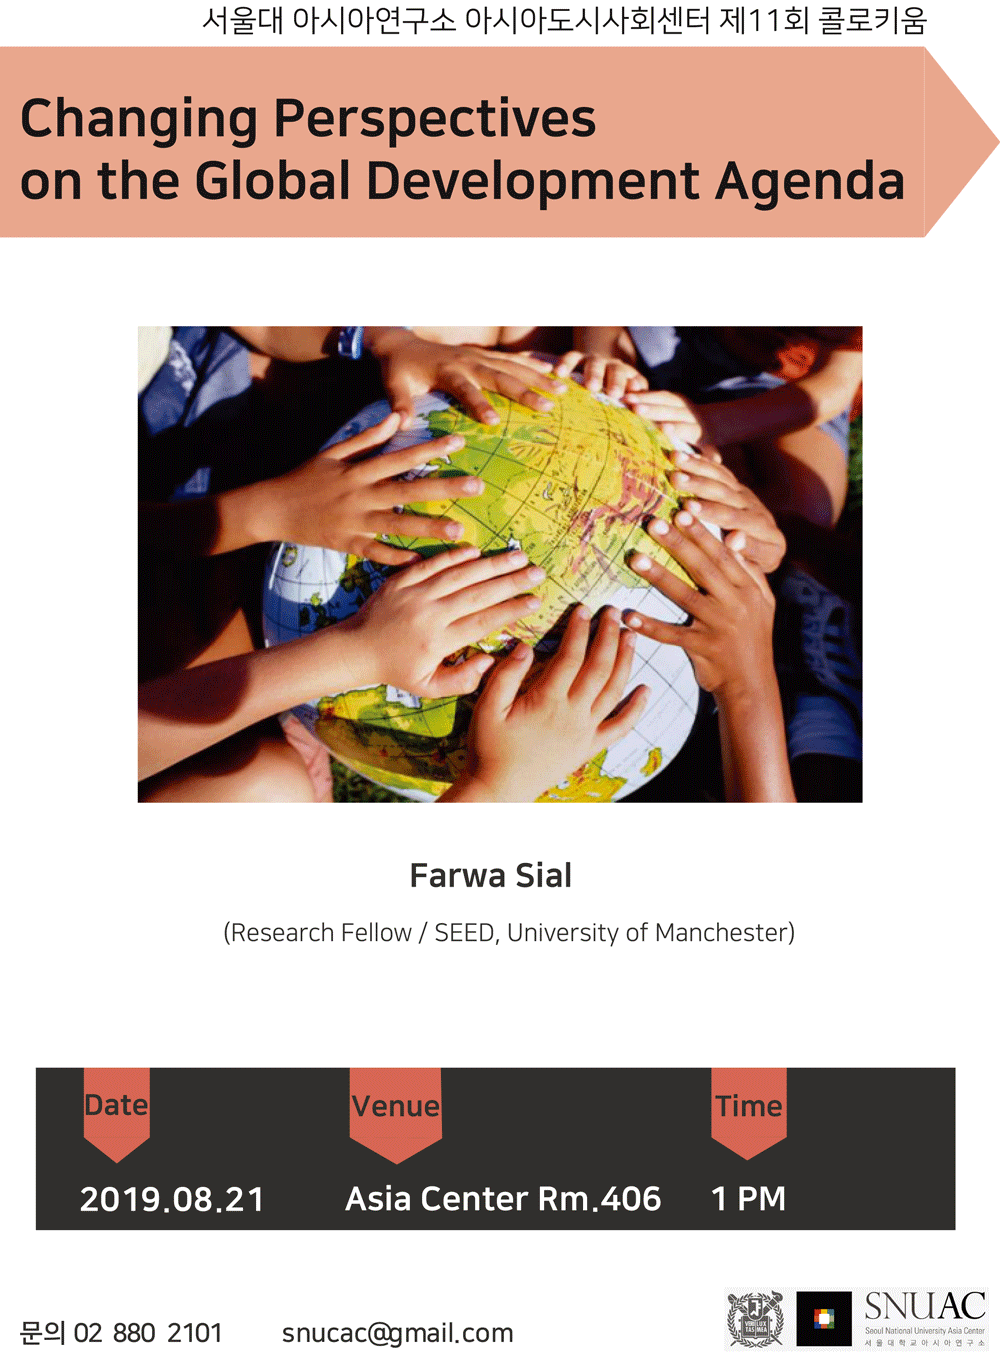 Changing Perspectives on the Global Development Agenda